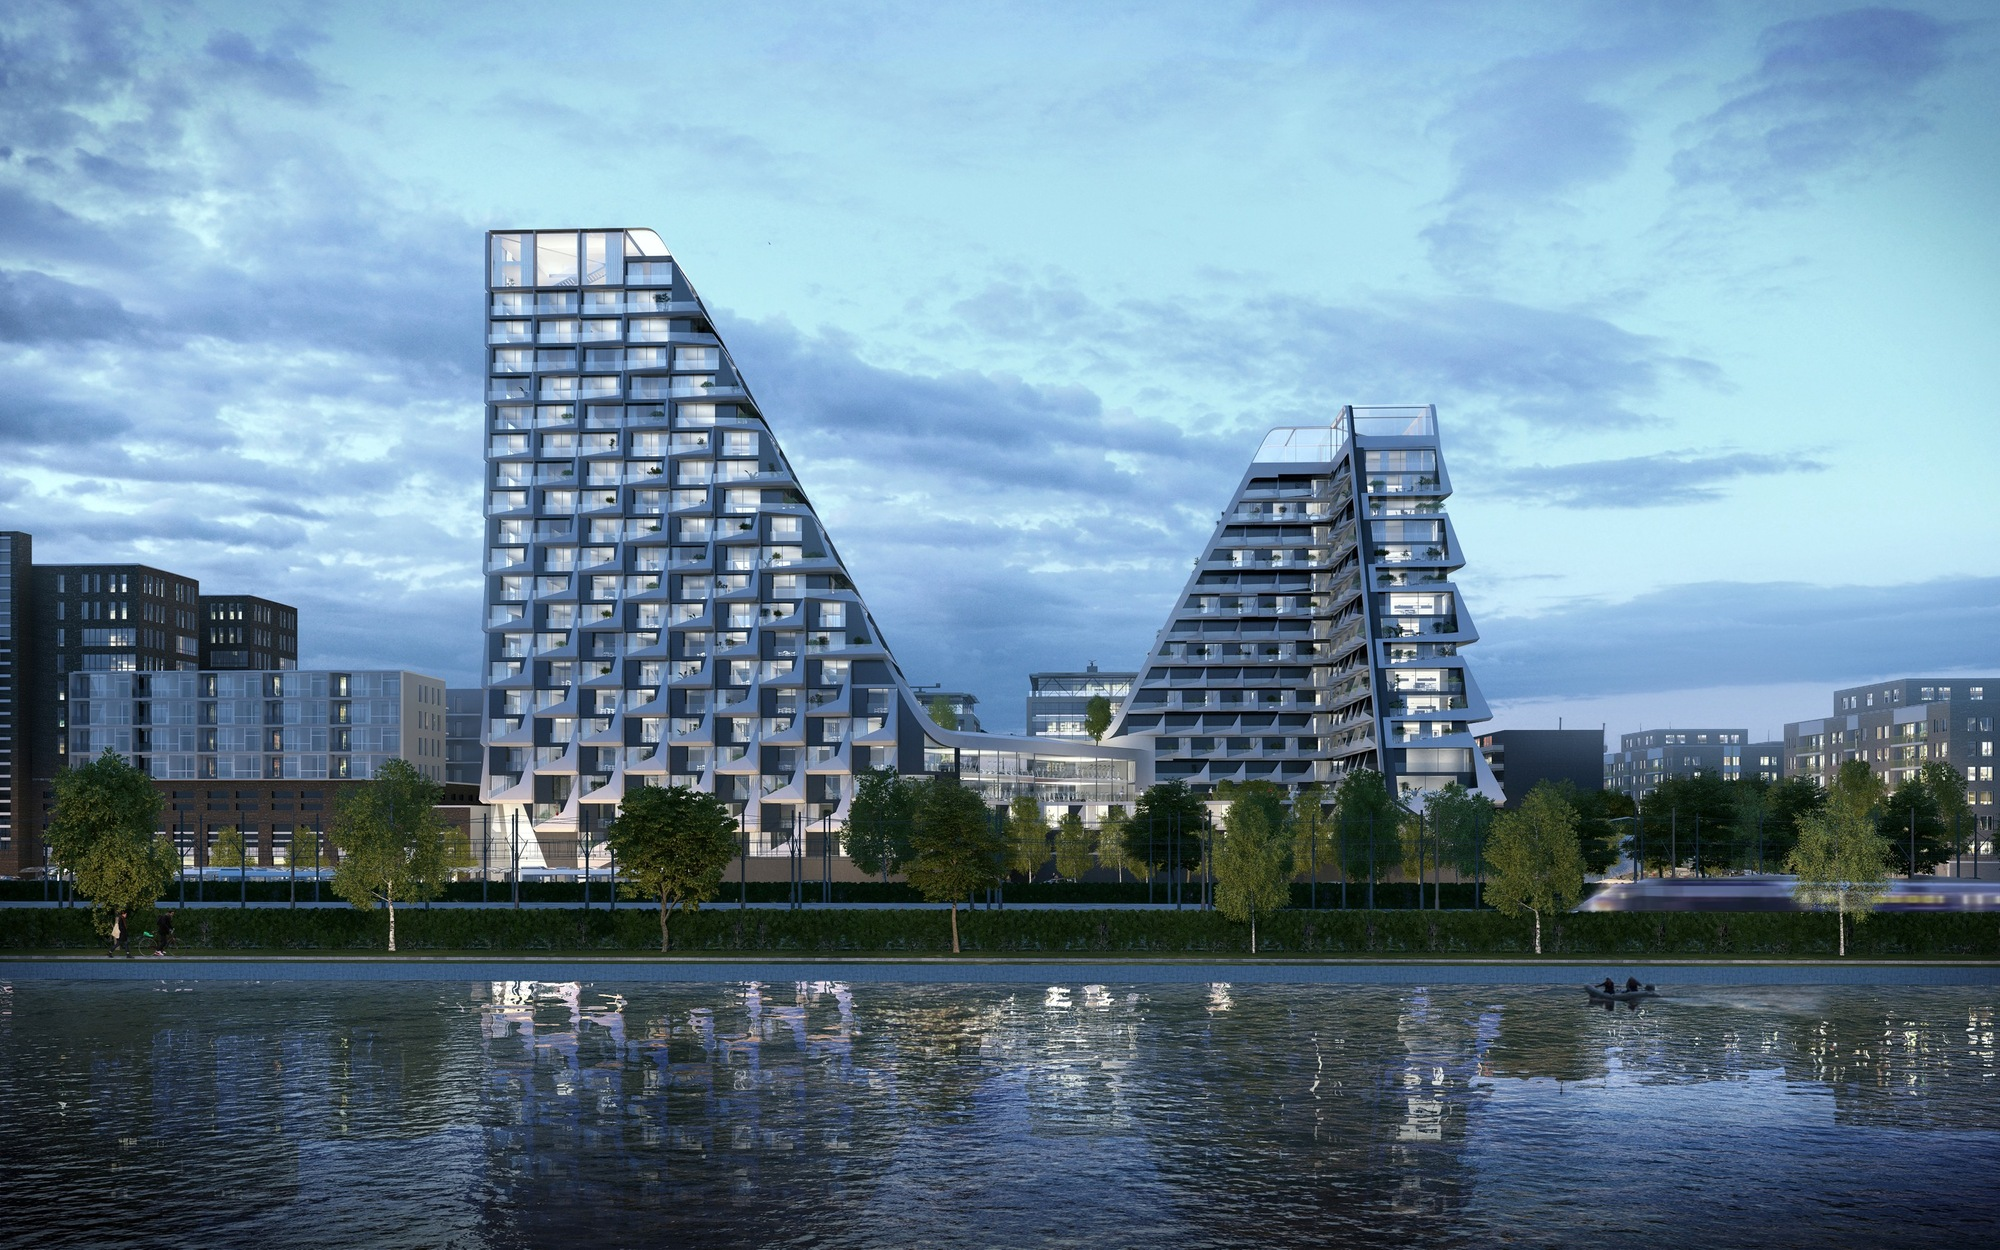 Gallery of Peter Pichler Architecture Wins Competition for